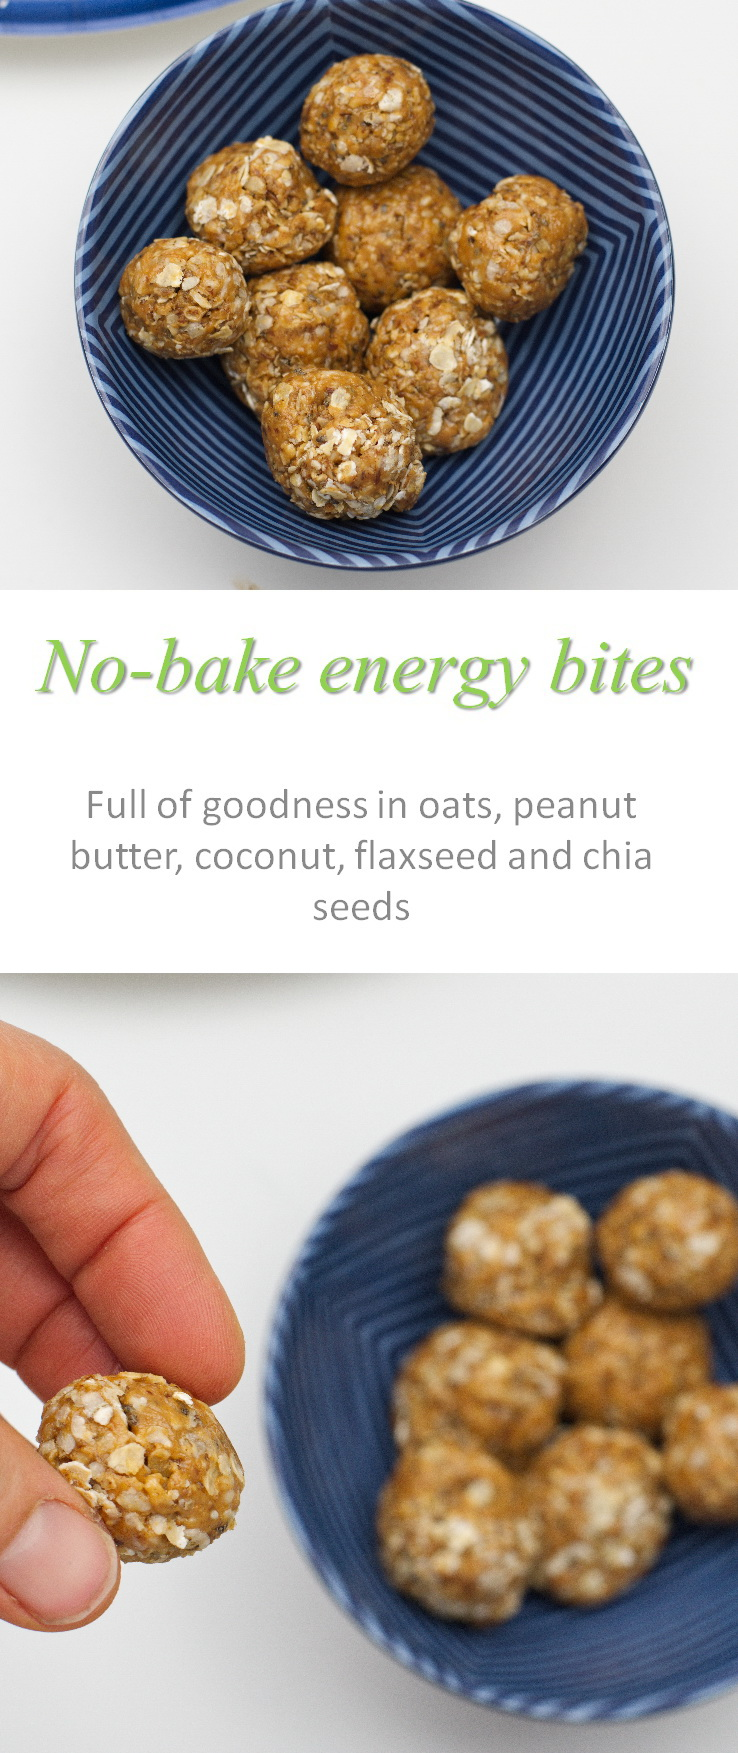 A healthy, no-bake gluten and dairy-free recipe with no added refined sugar, these no-bake energy bites have plenty of taste! #energybites